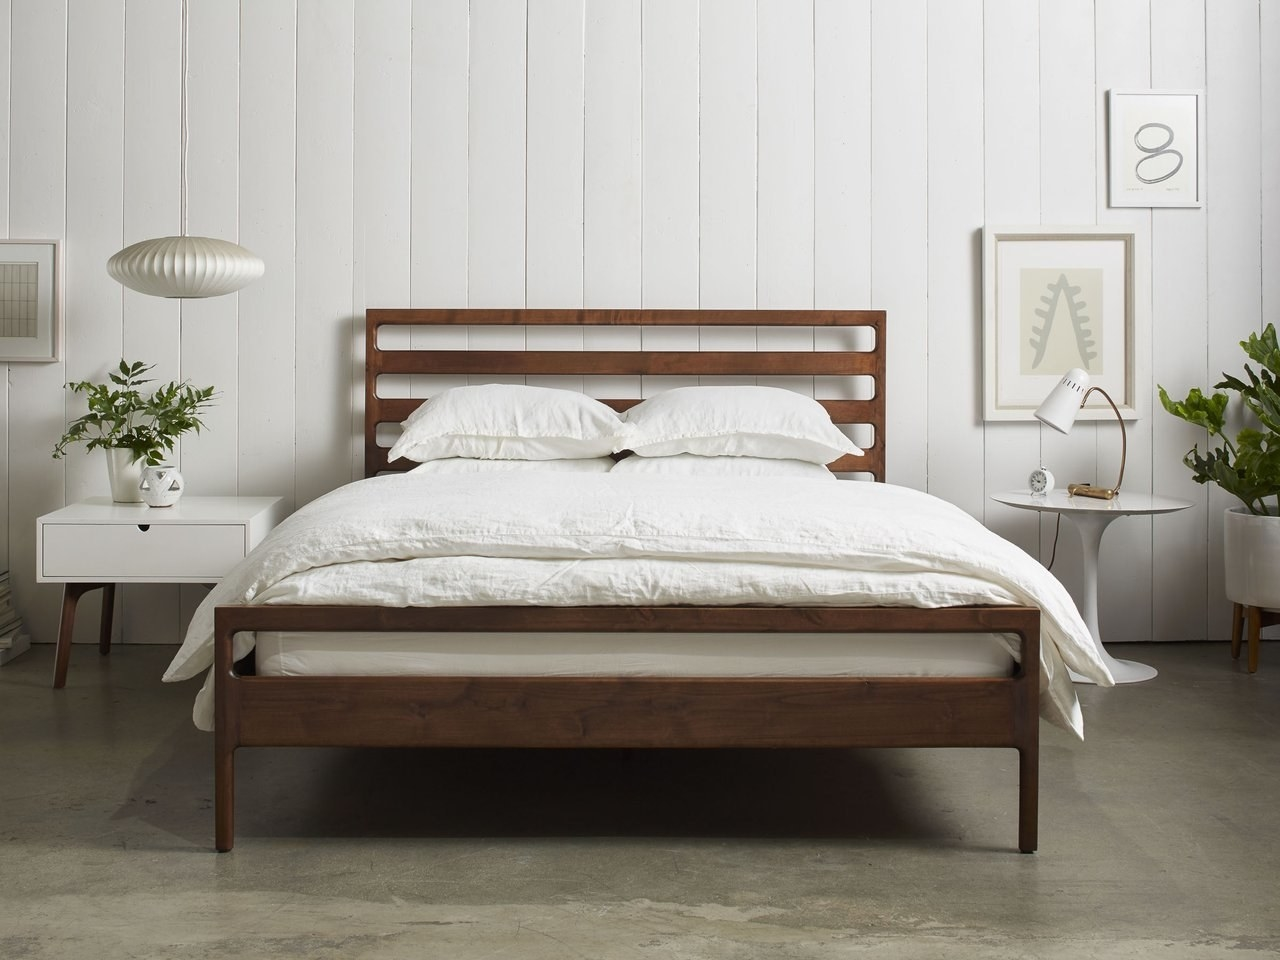 Wood bed frame with slots in the headboard in a bedroom.